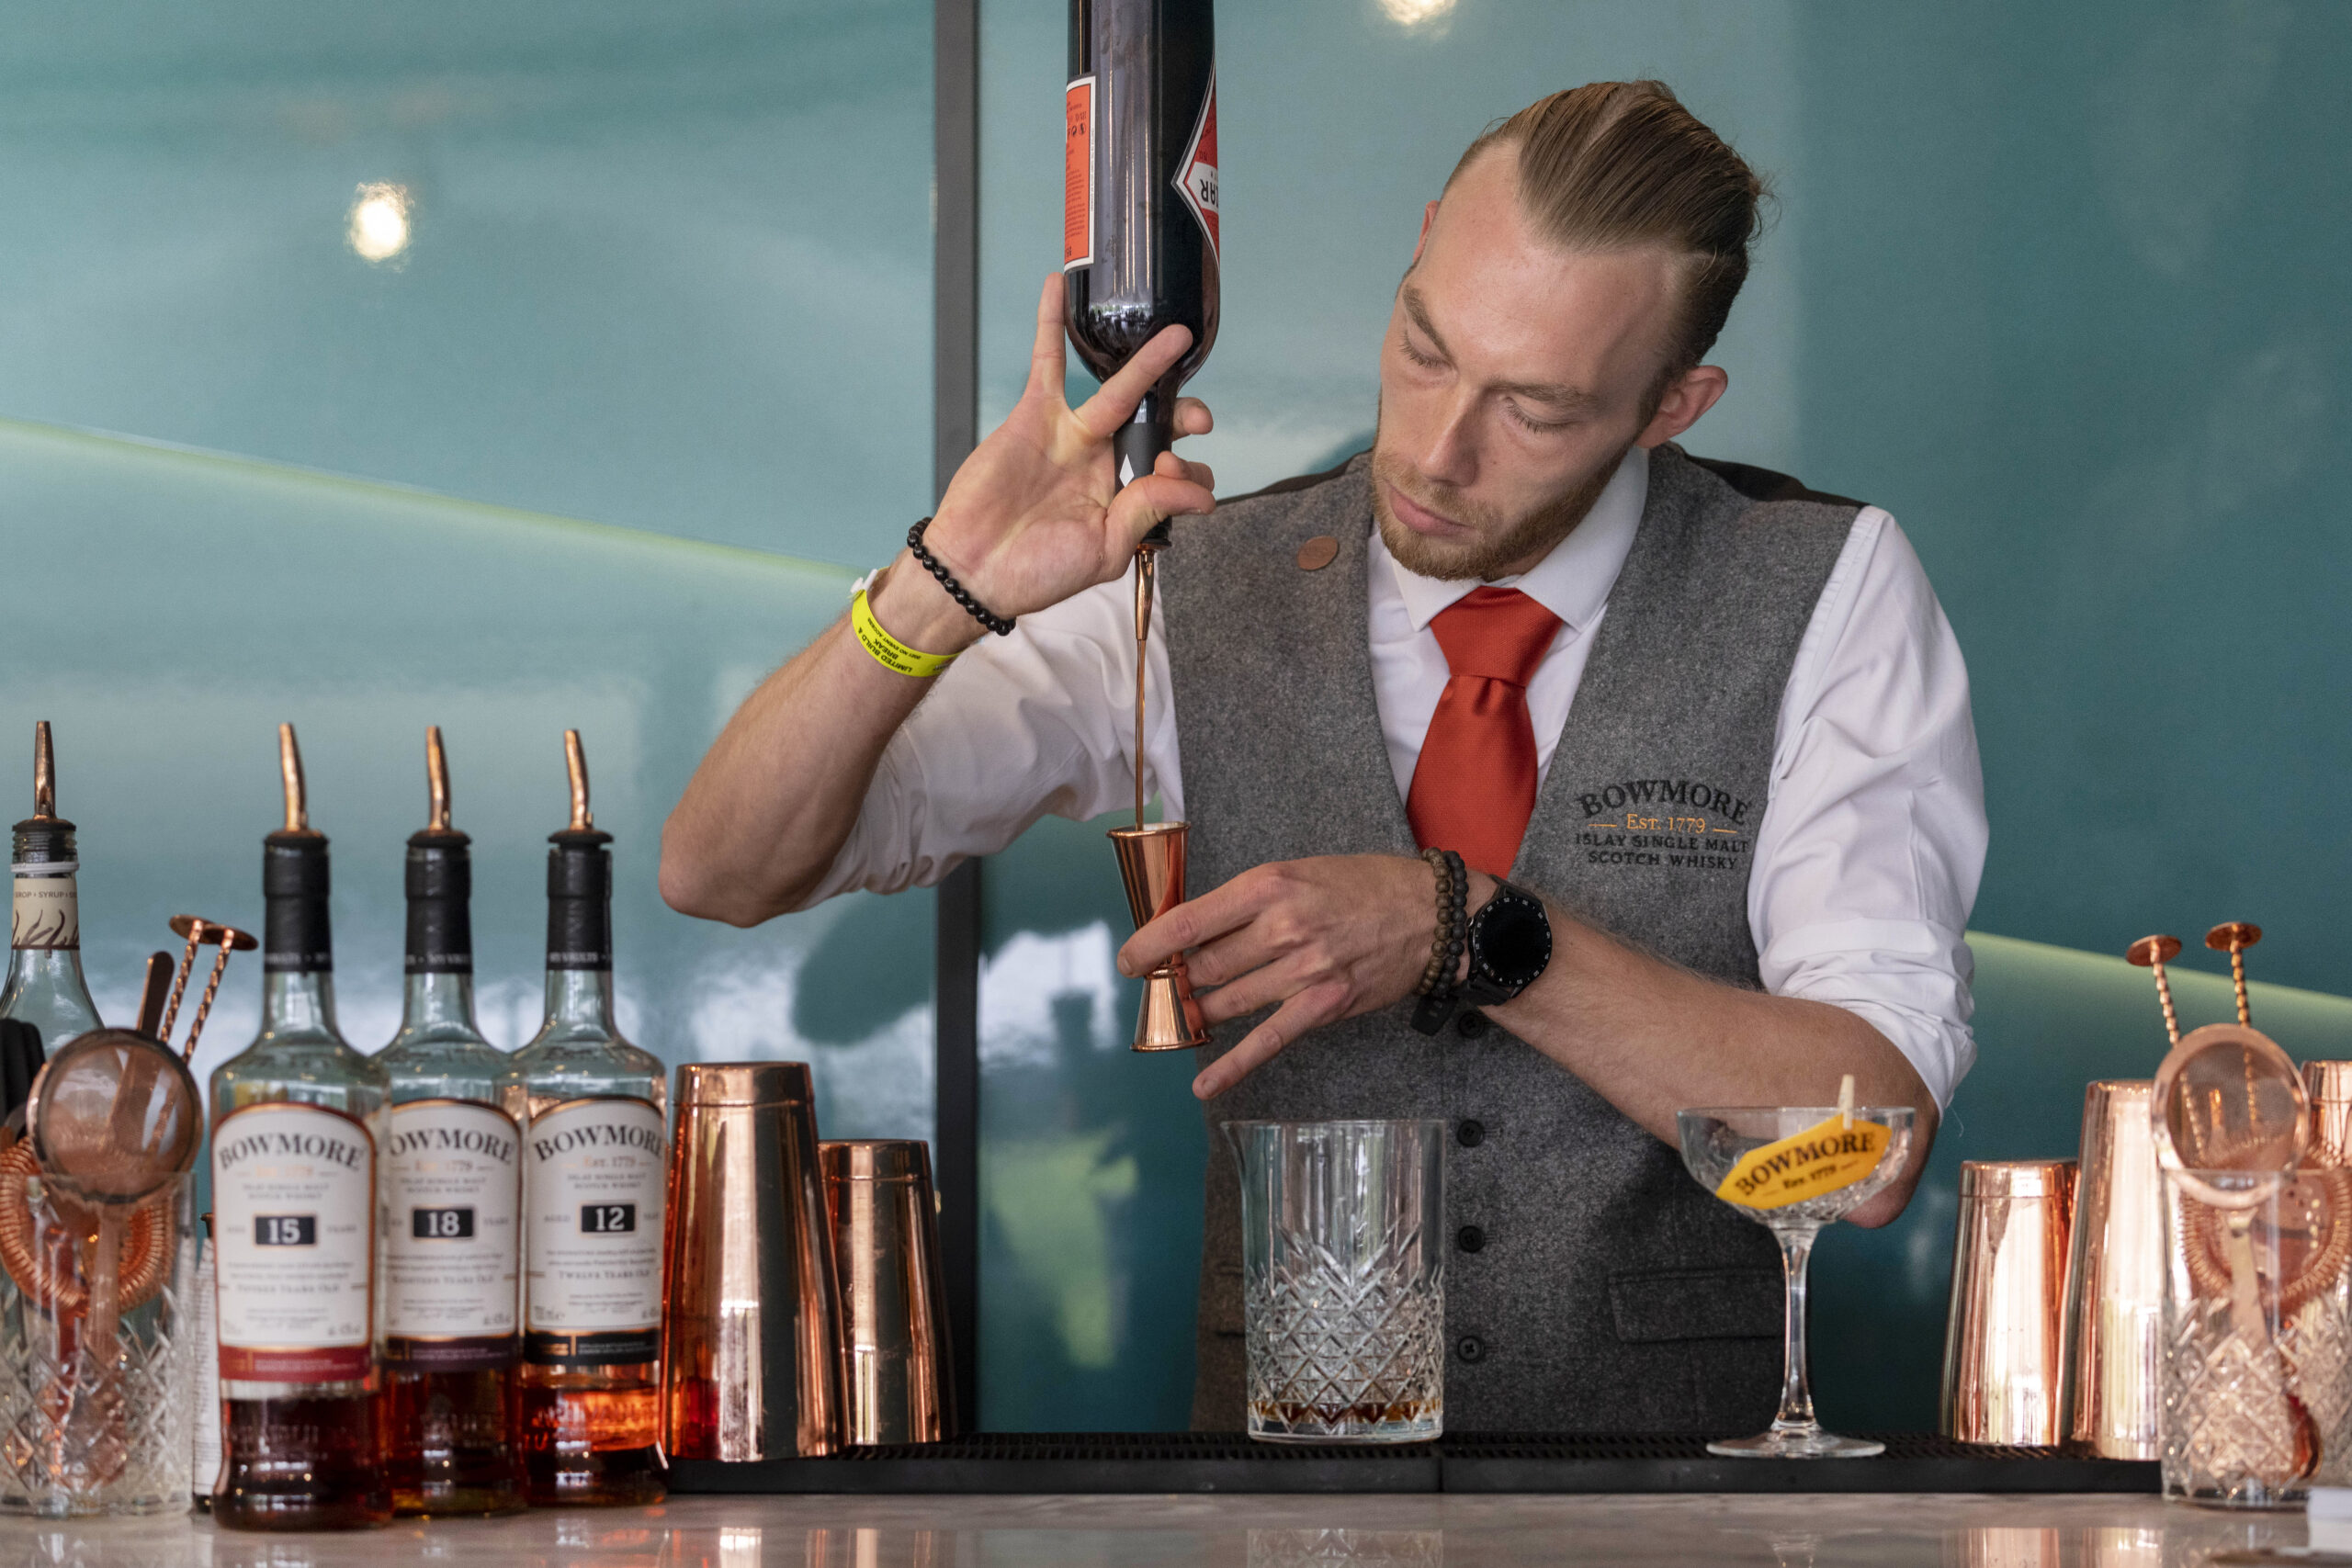 A mixologist from The Cocktail Service at an activation for Bowmore Whisky in the Aston Martin marquee at Goodwood Festival 2021